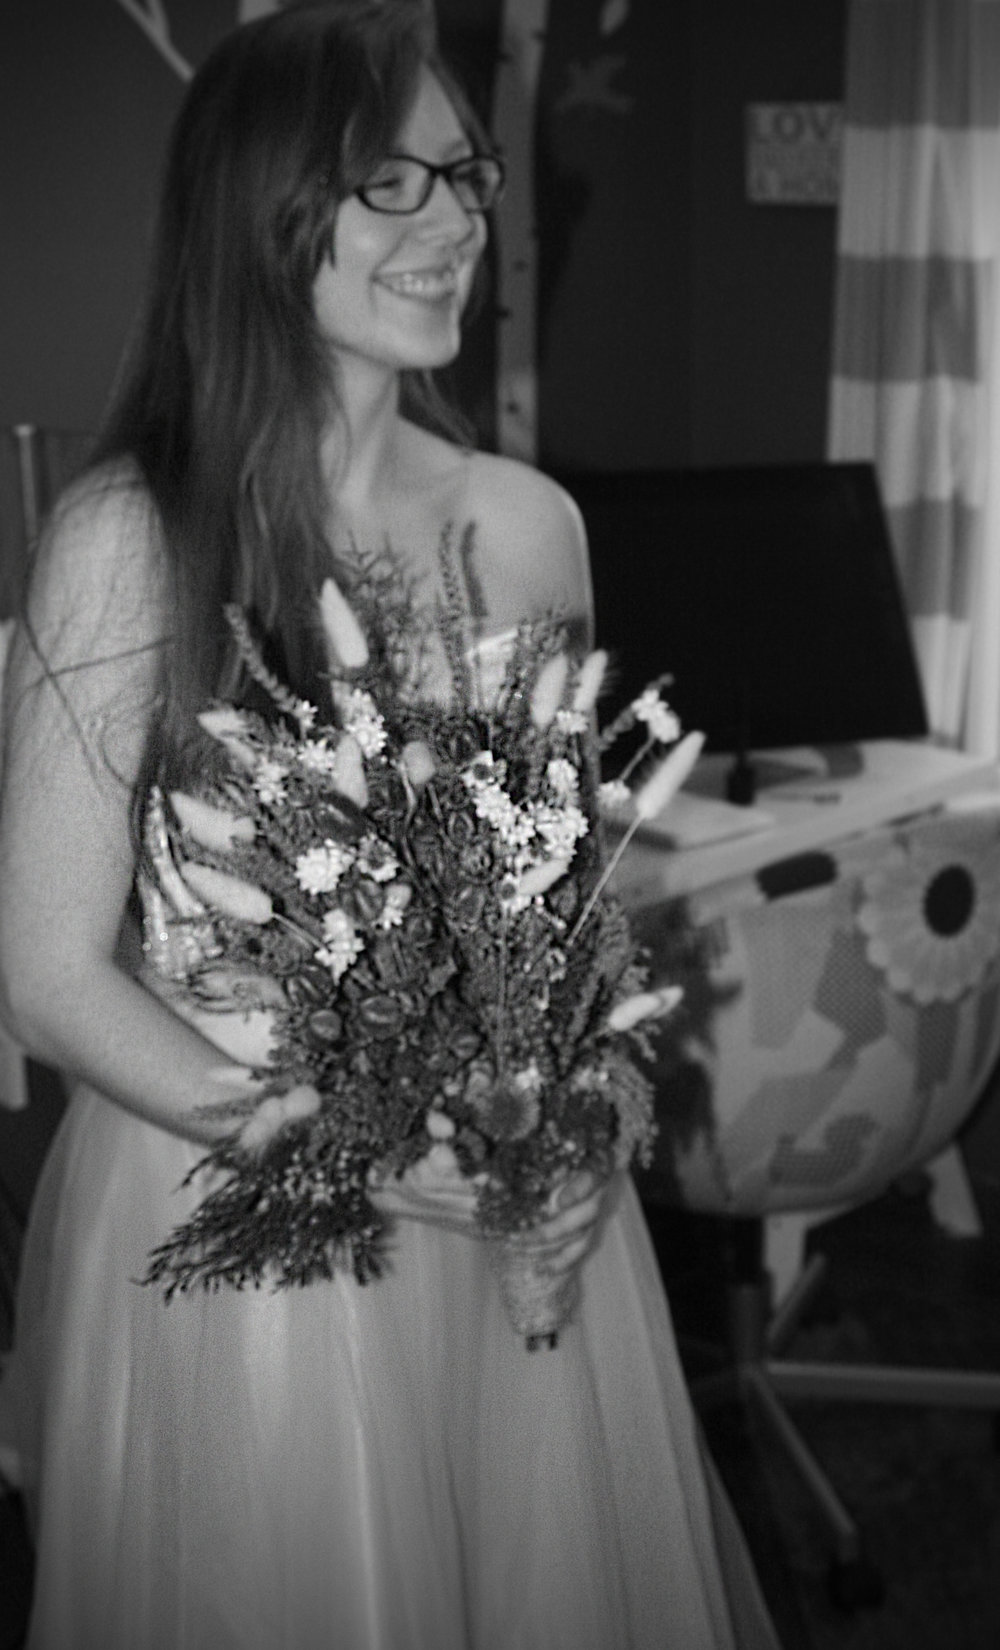 Last image of Kassandra posing with her new dress fitting correctly and testing out her bouquet (she created).